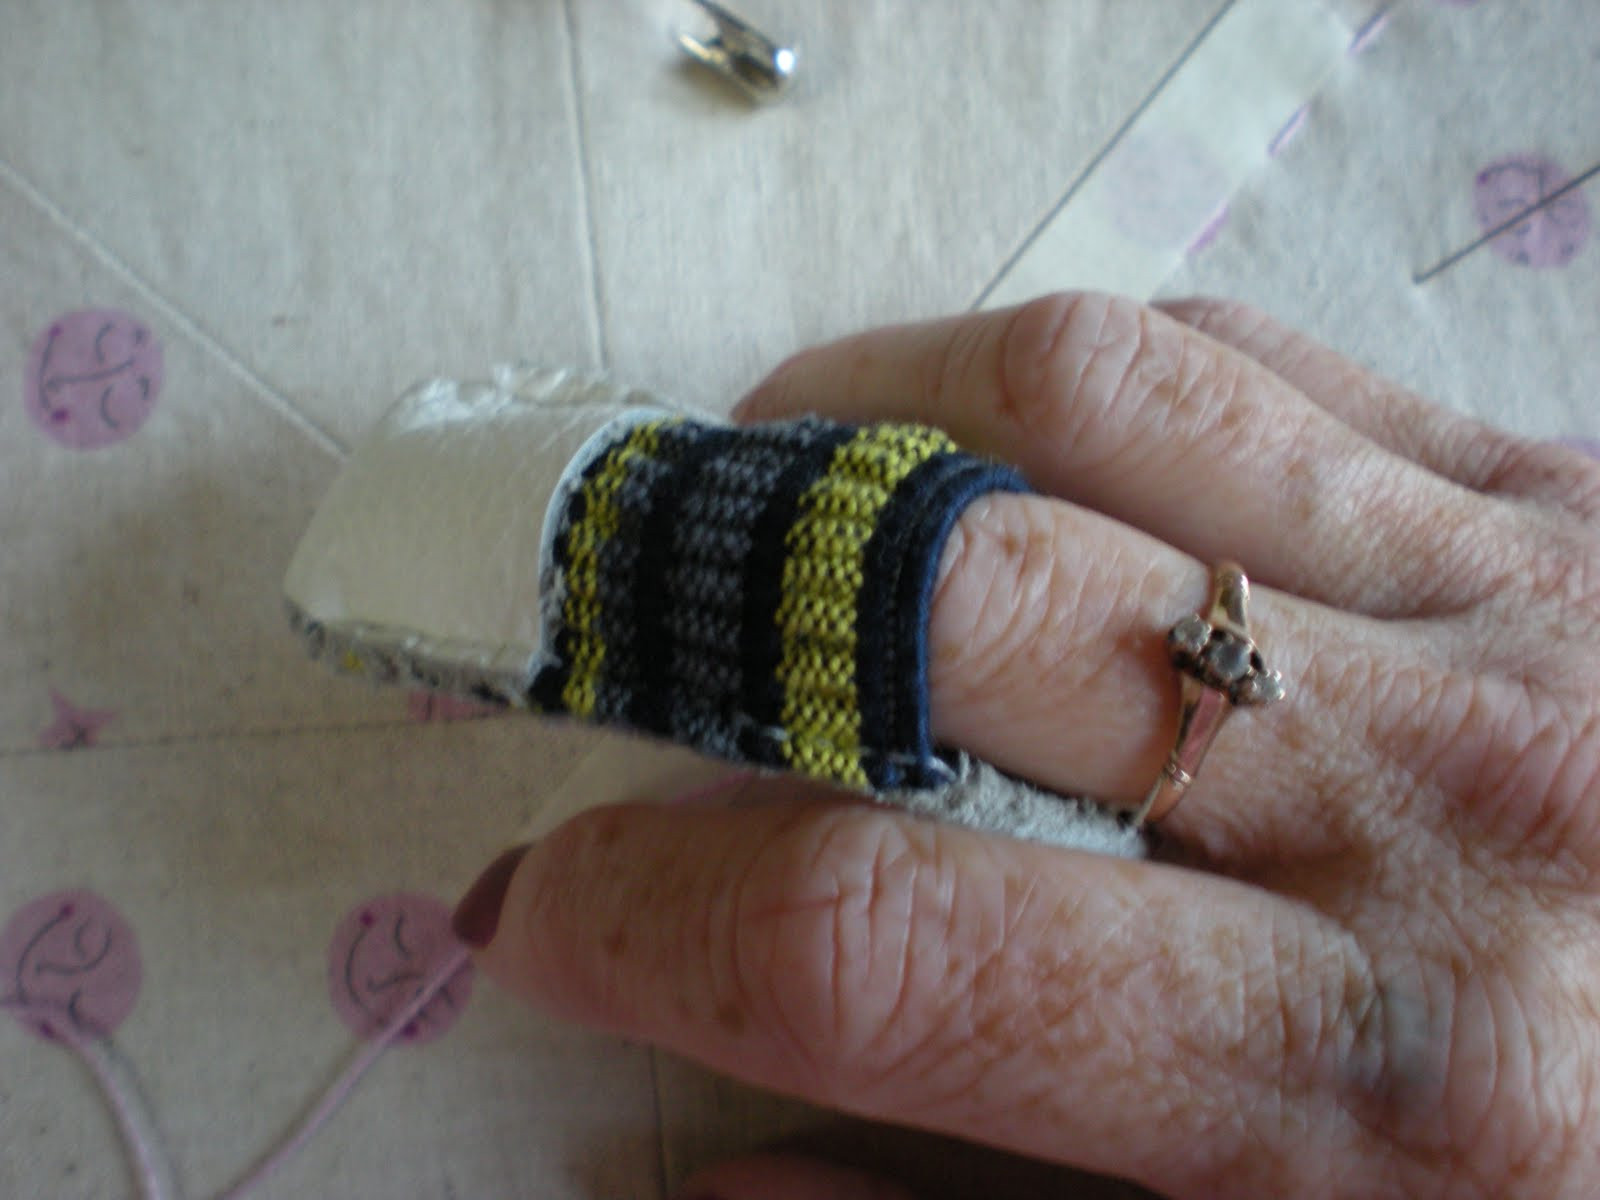 Molly Flanders: Hand Quilting....Pick Stitching....A Tutorial.... : hand quilting thimbles - Adamdwight.com